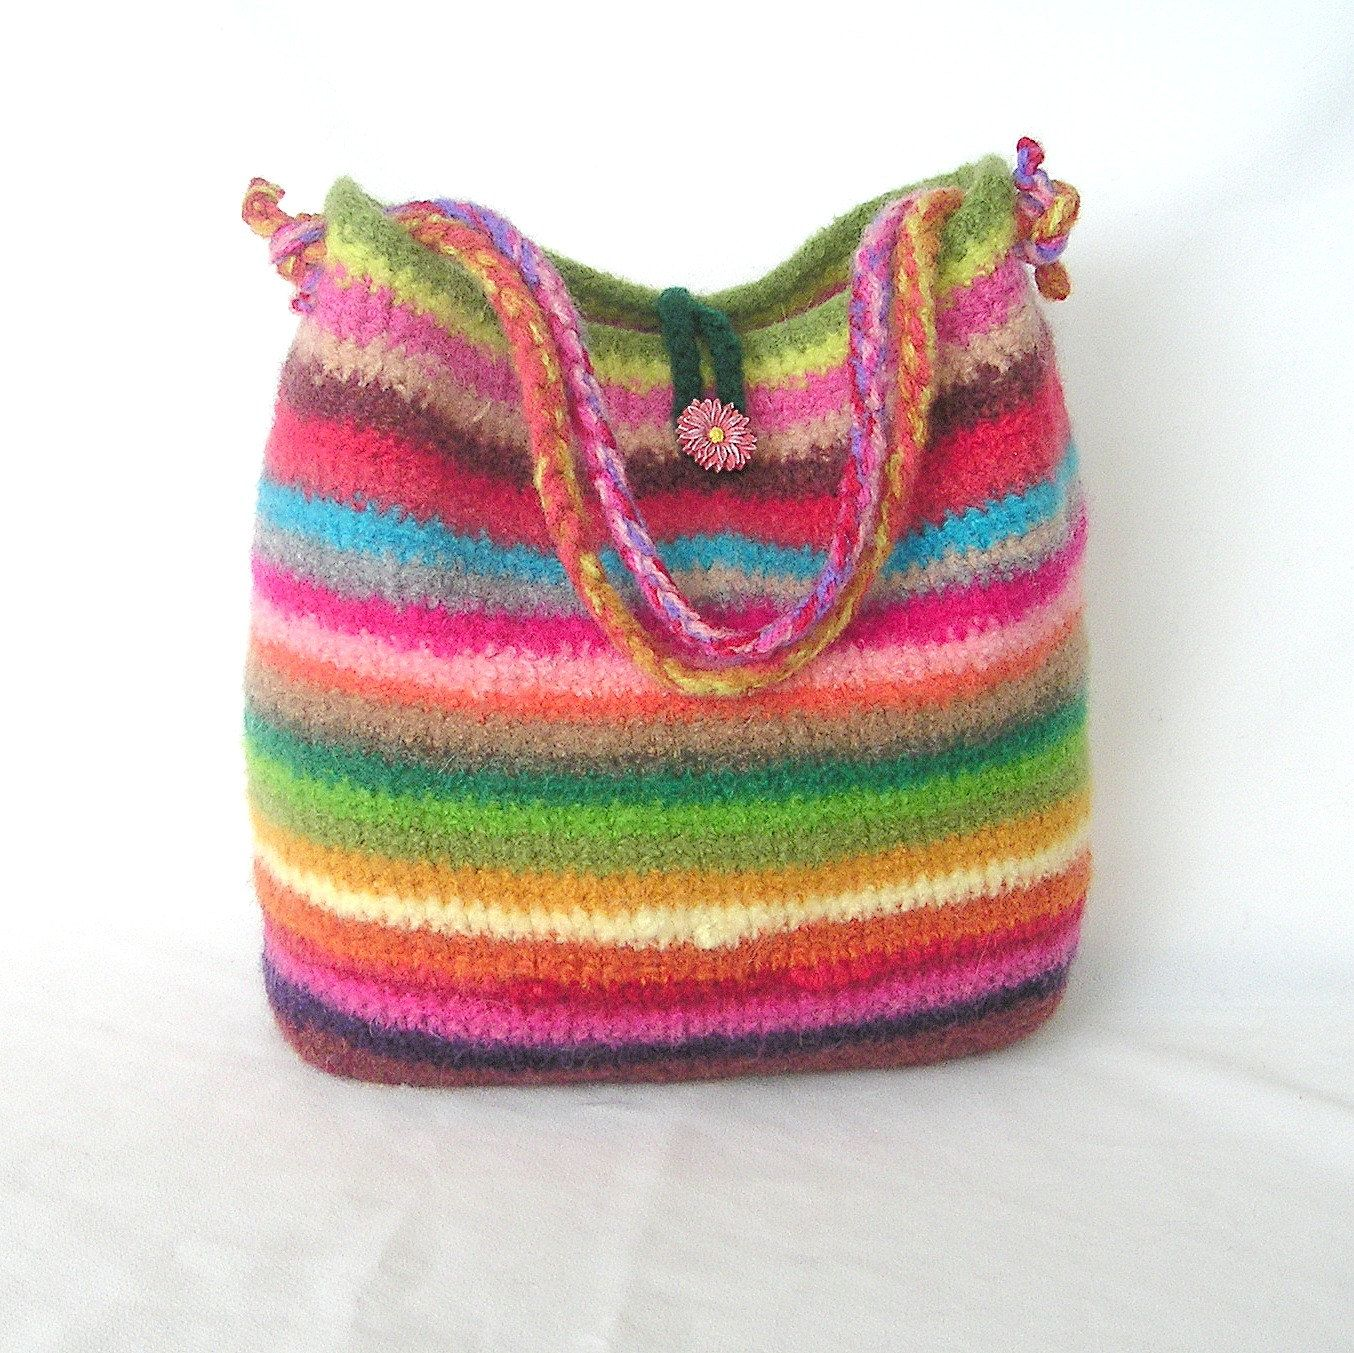 Crochet purses over 100 free felted knitted bags purses and crochet purses over 100 free felted knitted bags purses and totes knitting patterns bankloansurffo Gallery